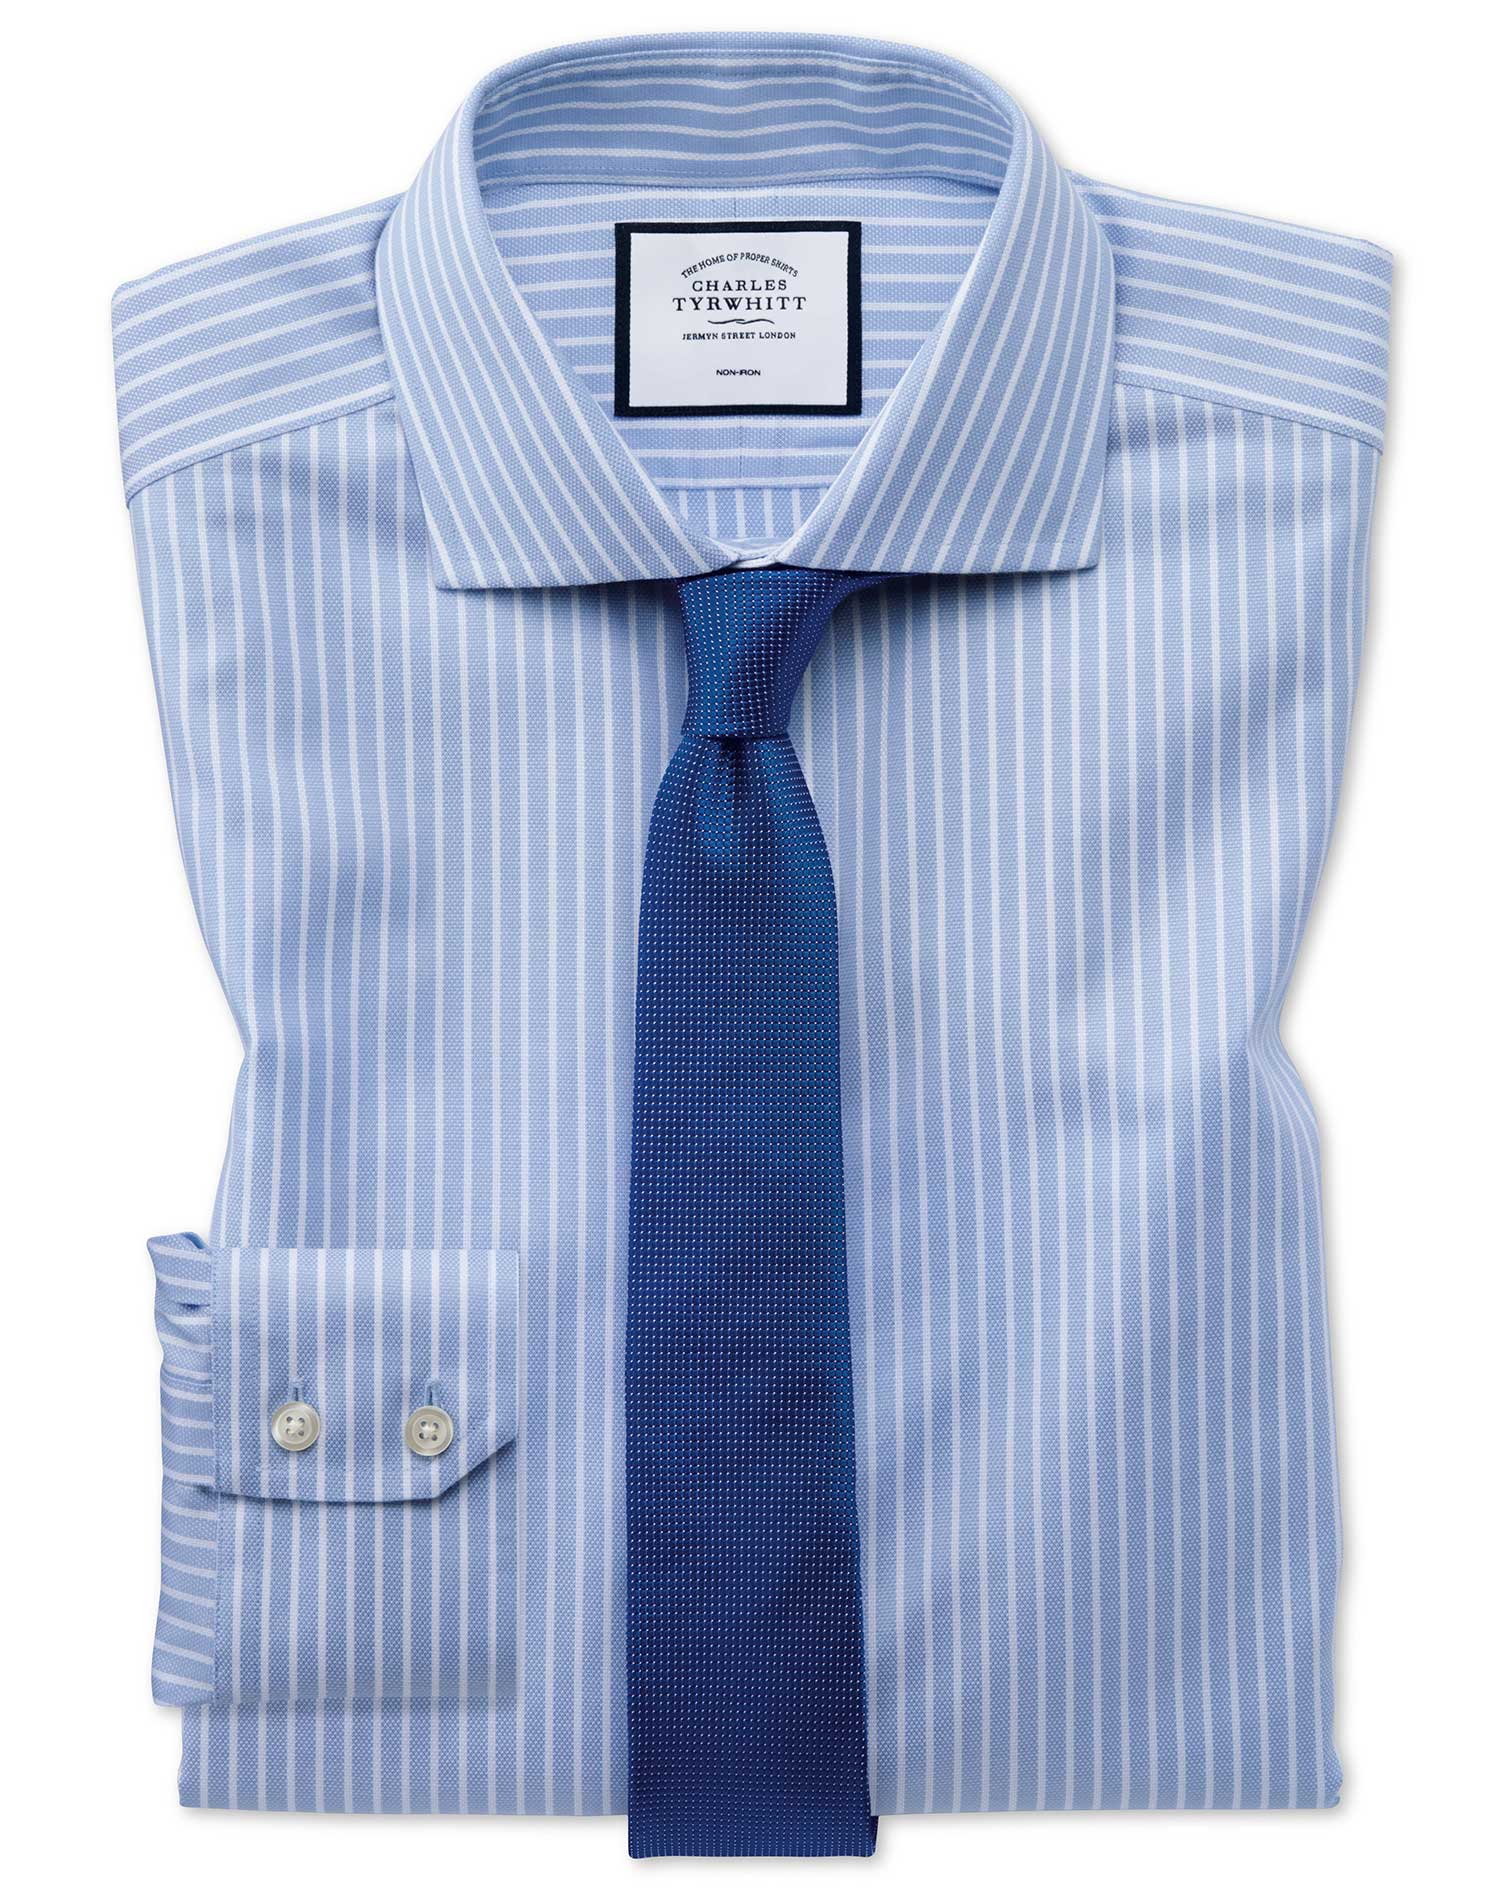 Extra Slim Fit Non-Iron Cotton Stretch Oxford Sky Blue and White Stripe Formal Shirt Single Cuff Siz